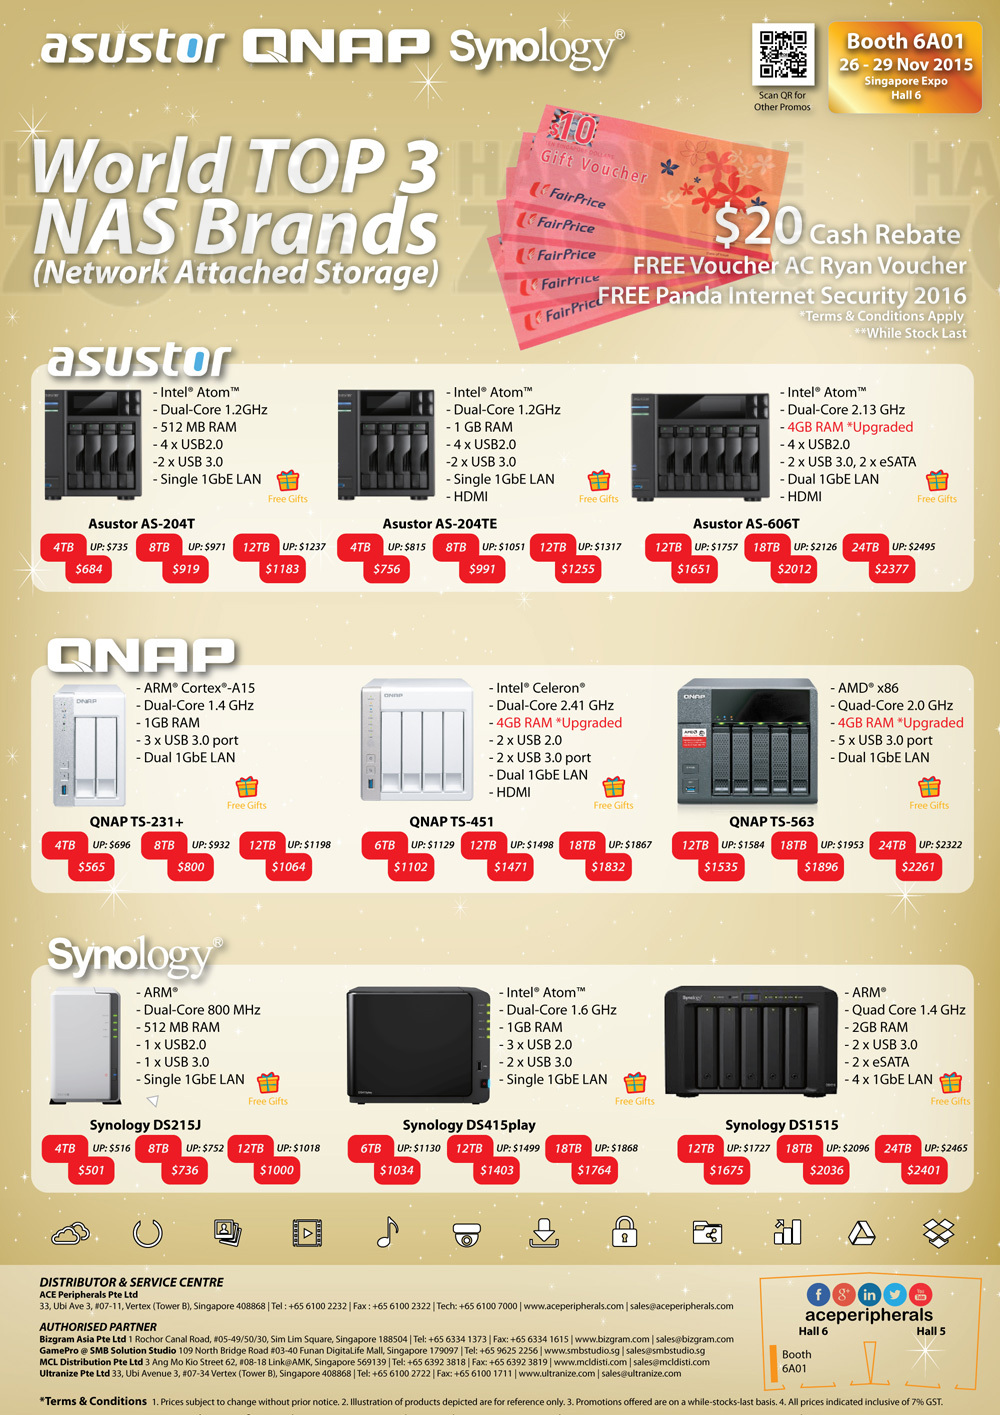 Asustor, QNAP and Synology NAS - page 1 Brochures from SITEX 2015